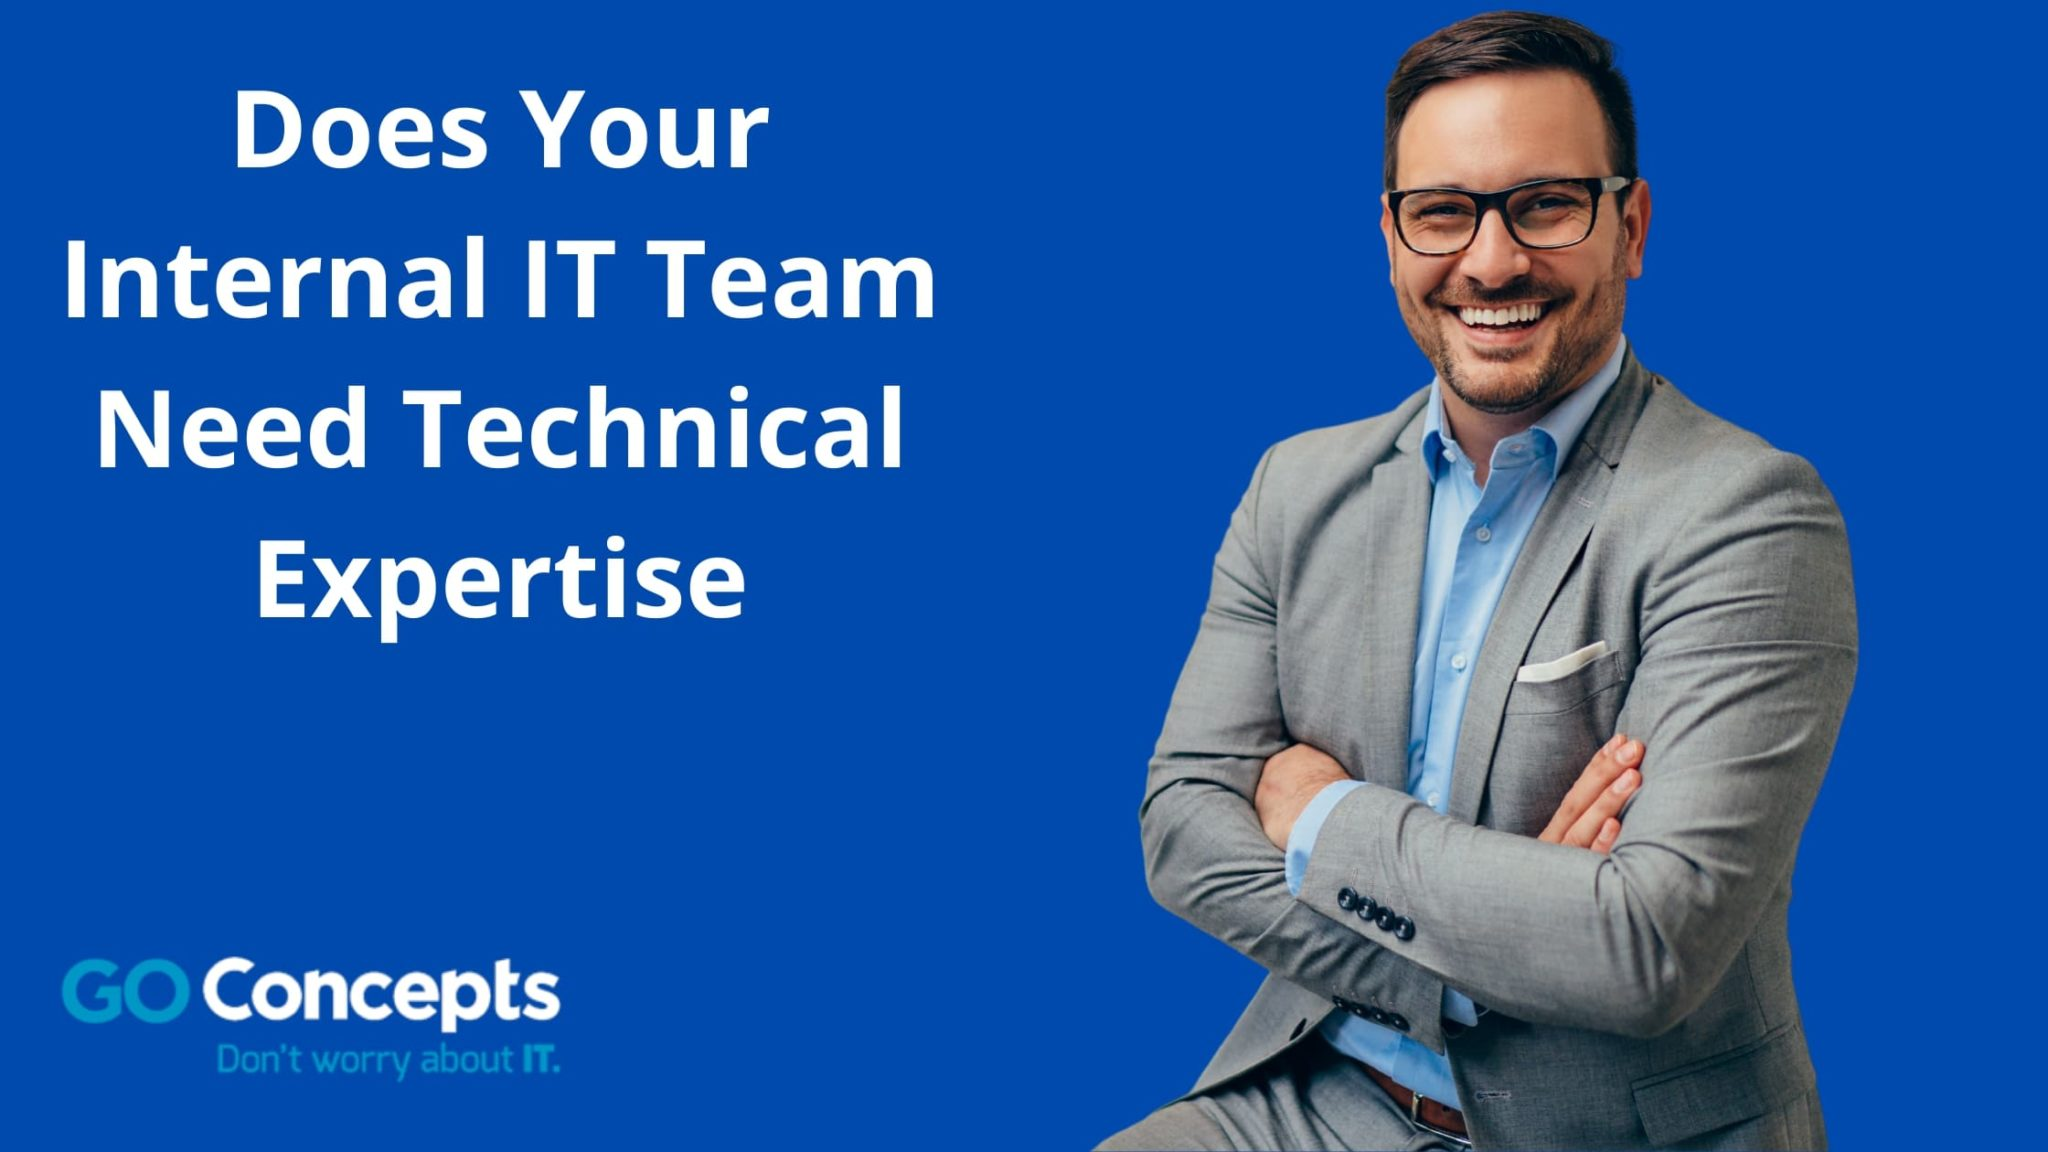 Does Your Internal IT Team Need Technical Expertise